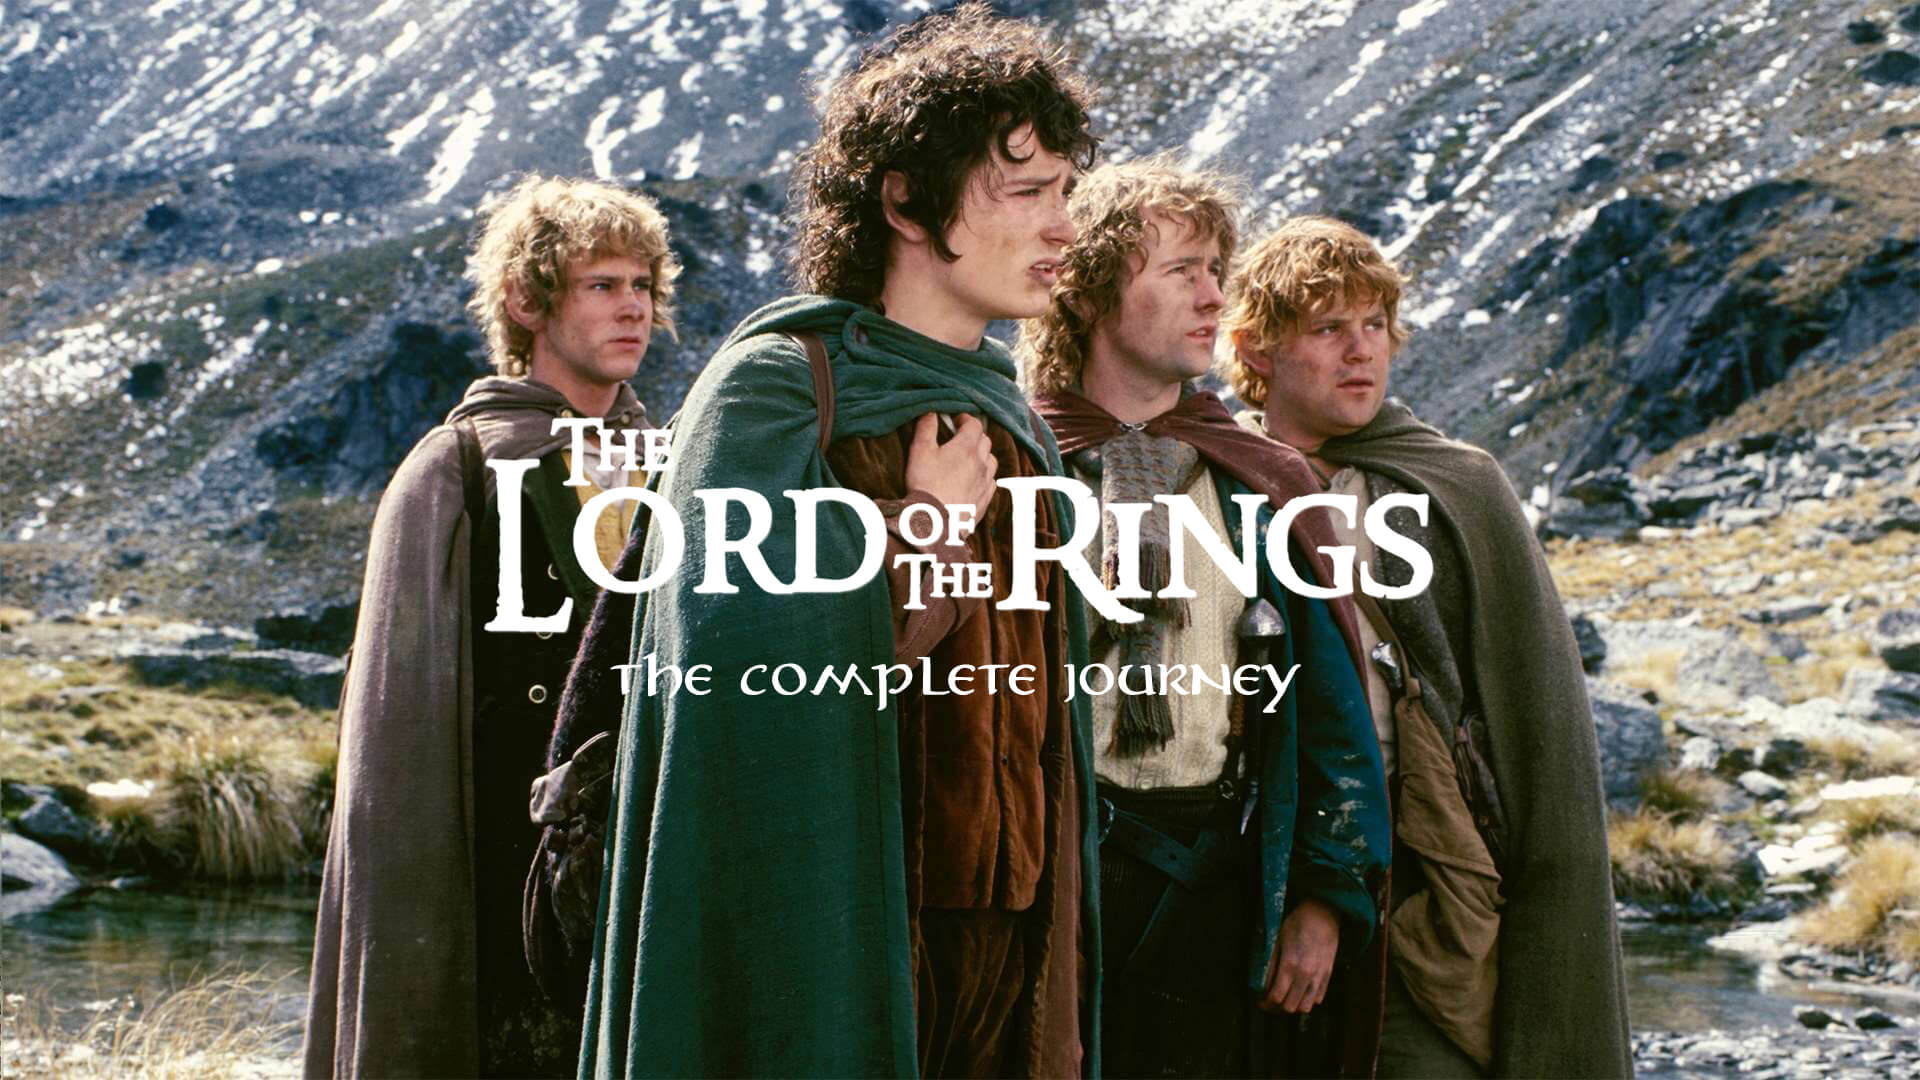 the lord of the rings the complete extended journey lab111